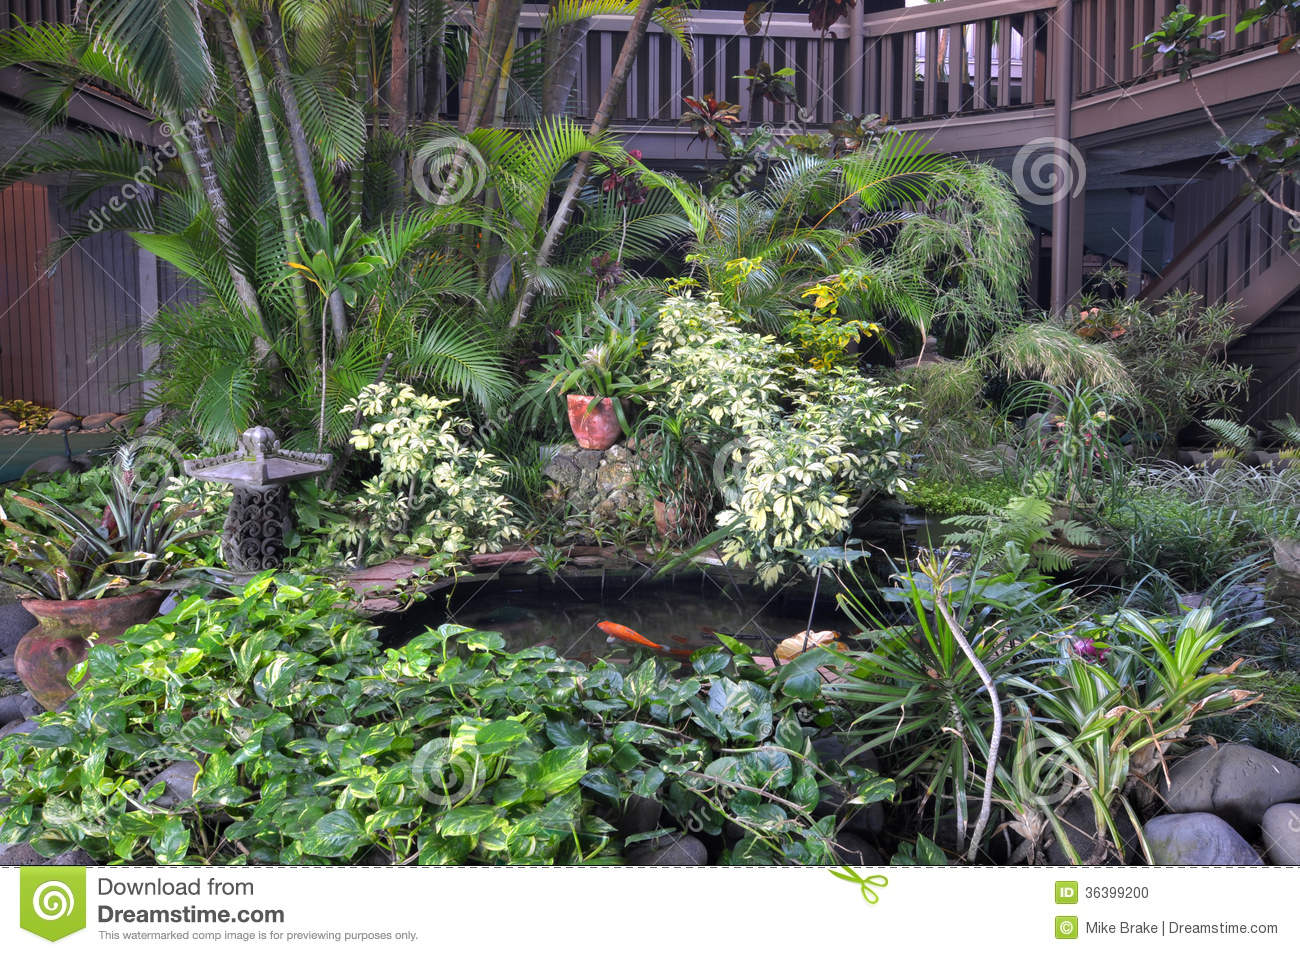 Jardin tropical d 39 int rieur photo stock image 36399200 - Jardin interieur com ...